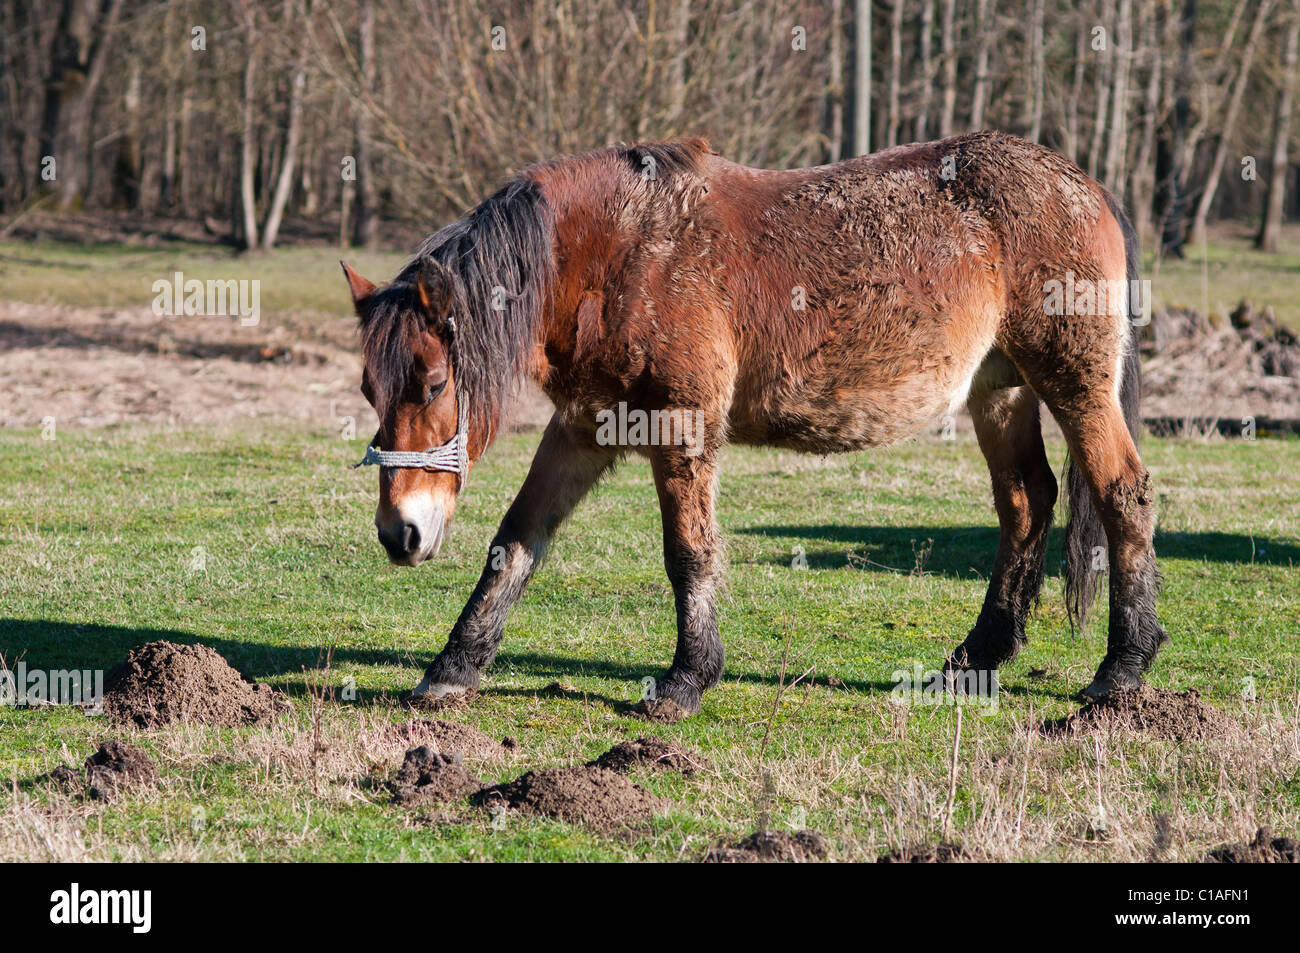 Croatian posavac horse grazing in the field - Stock Image